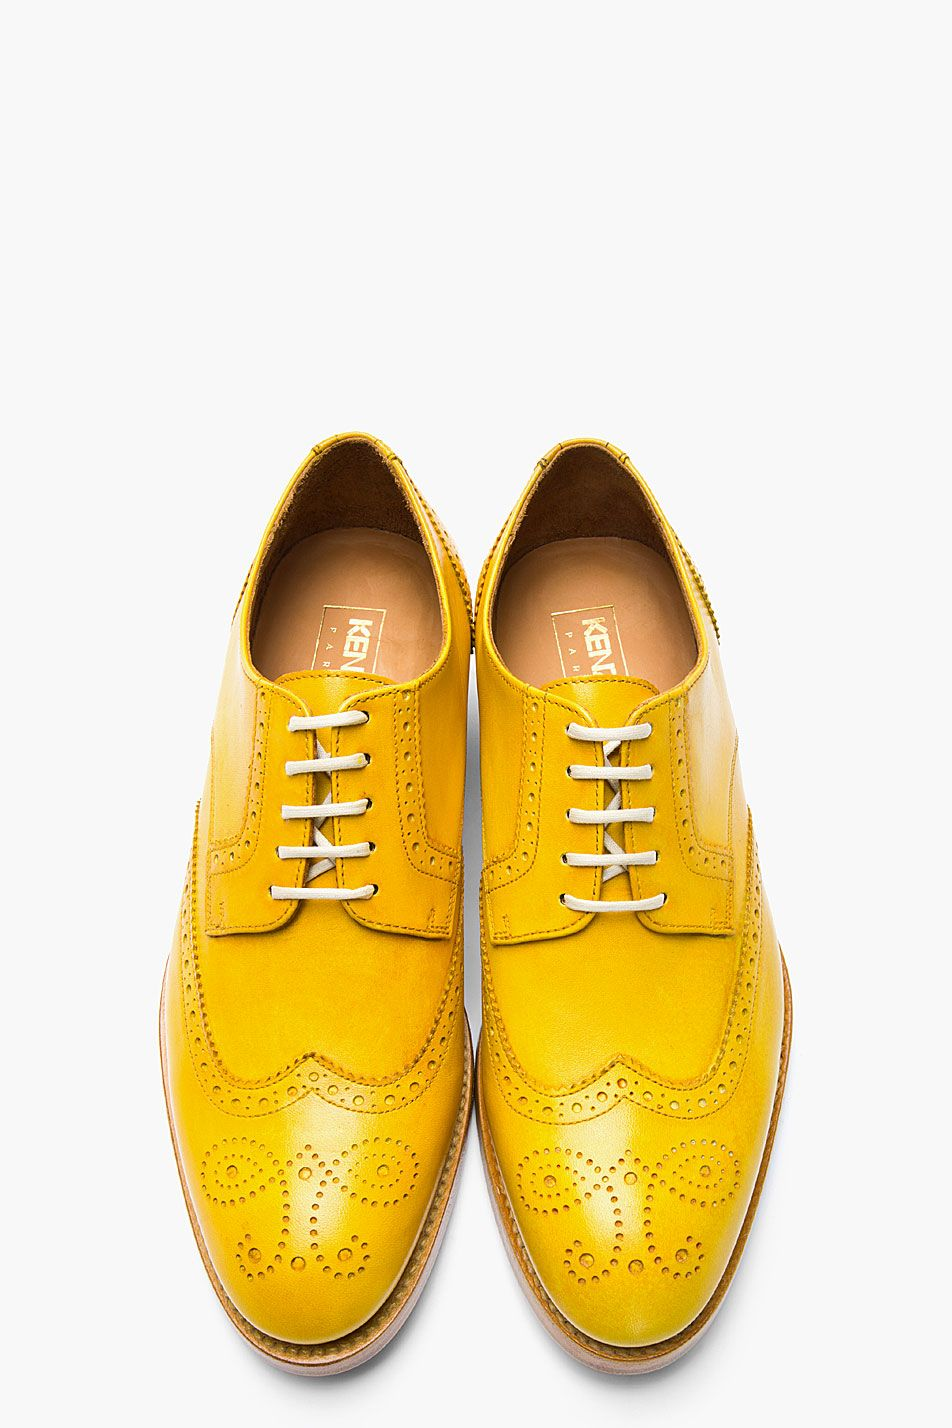 1084fbc25b4 Wingtip mens shoes in bold shade of canary yellow #Brogues #FallFashion